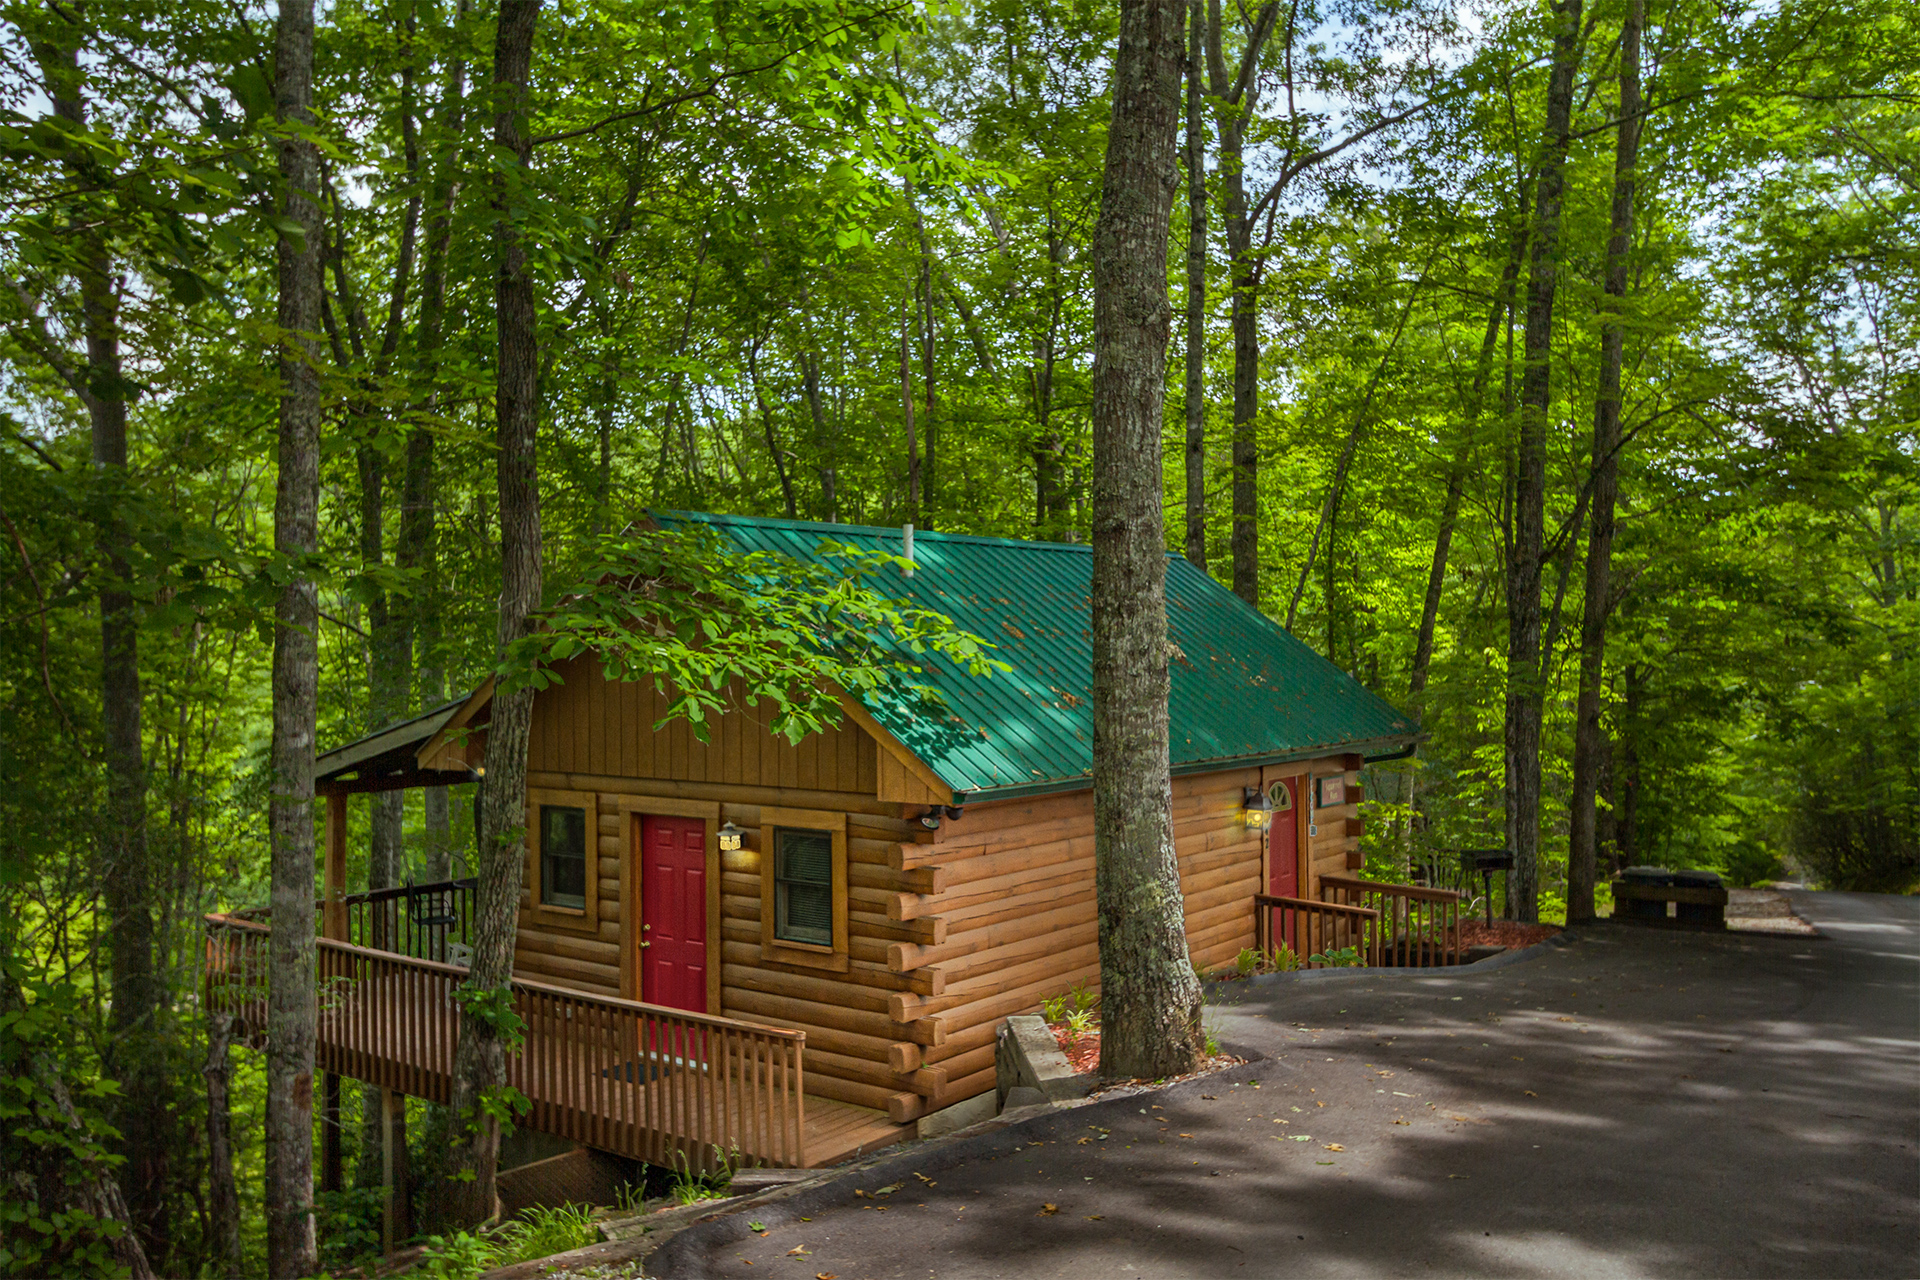 Rental details for squirrel run log cabin rental in bryson for Smoky mountain nc cabin rentals